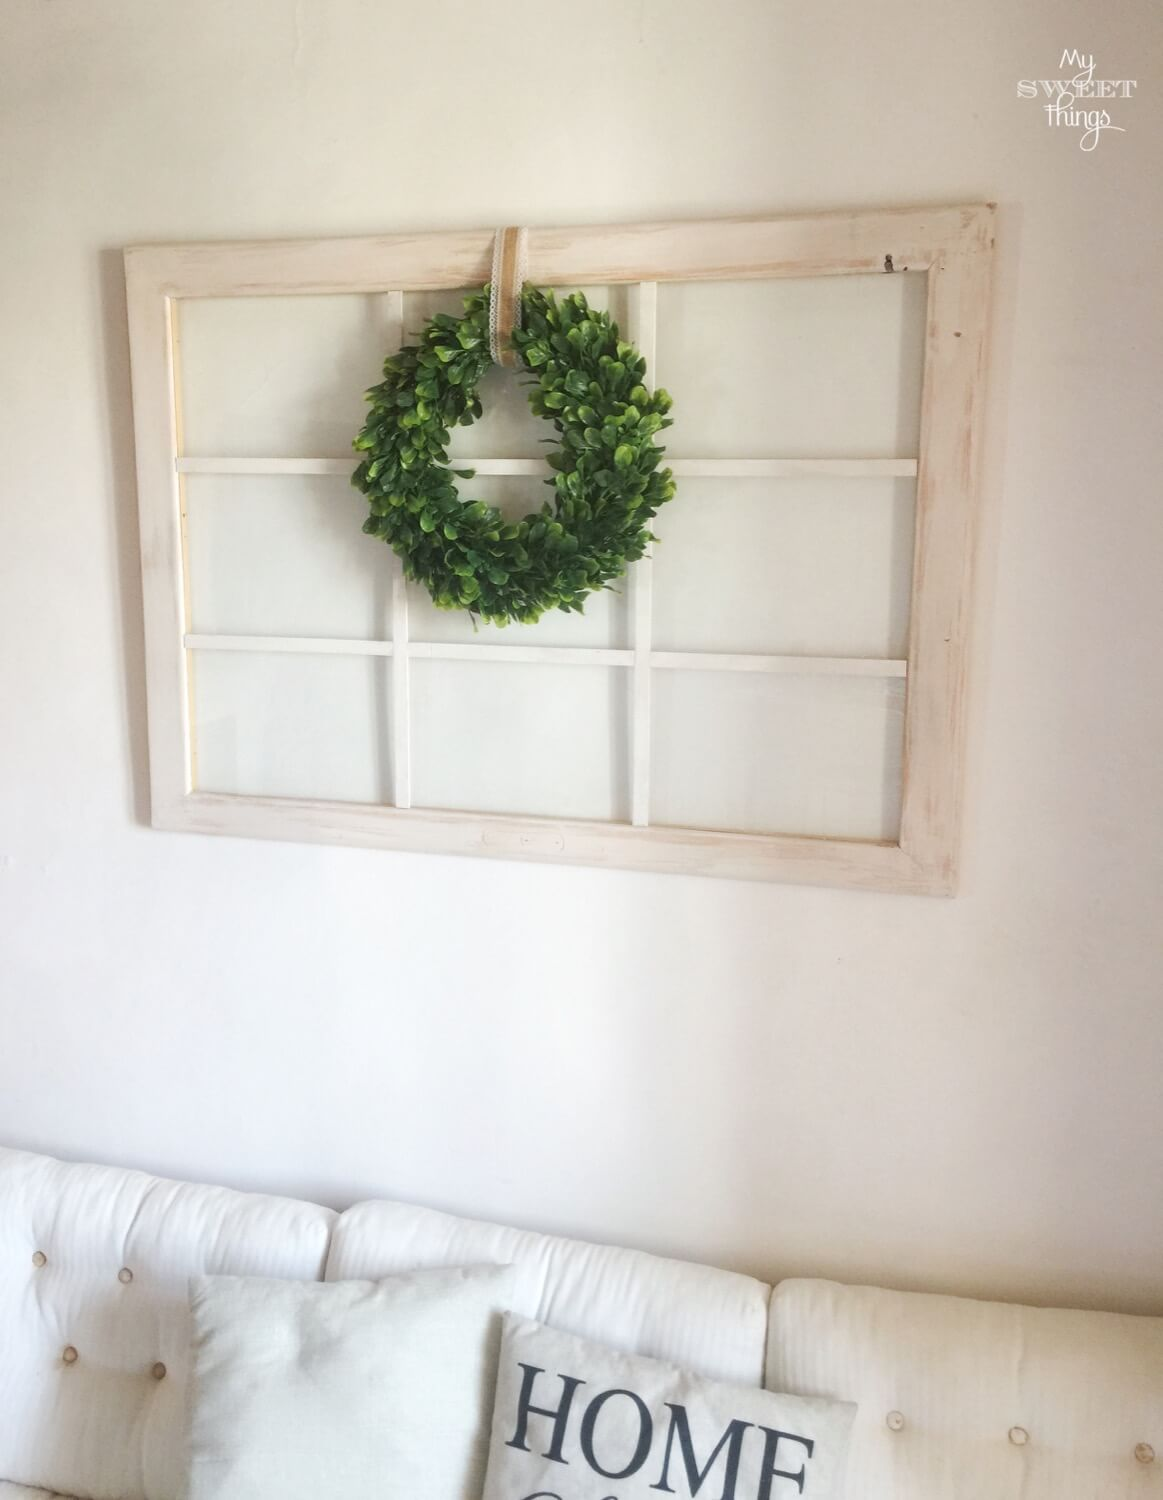 Old windows repurposed into home decor with boxwood wreath · Via www.seethings.net